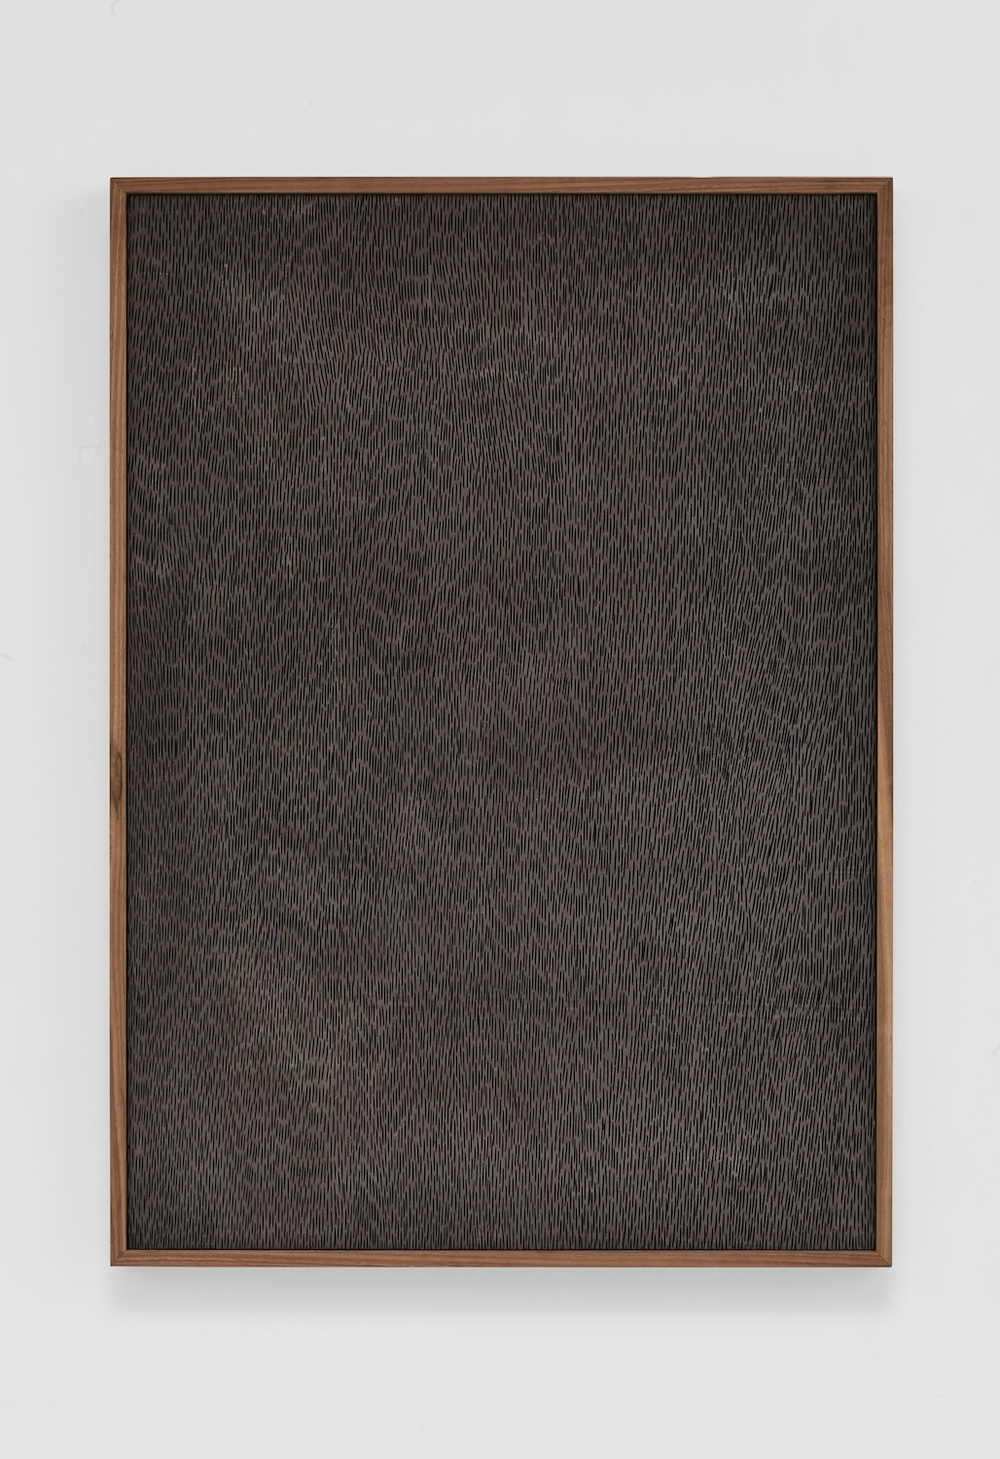 "Anthony Pearson Untitled (Etched Plaster) 2014 Pigmented hydrocal in walnut frame 42 1/2"" x 30 1/2"" x 2 1/2"" AP355"